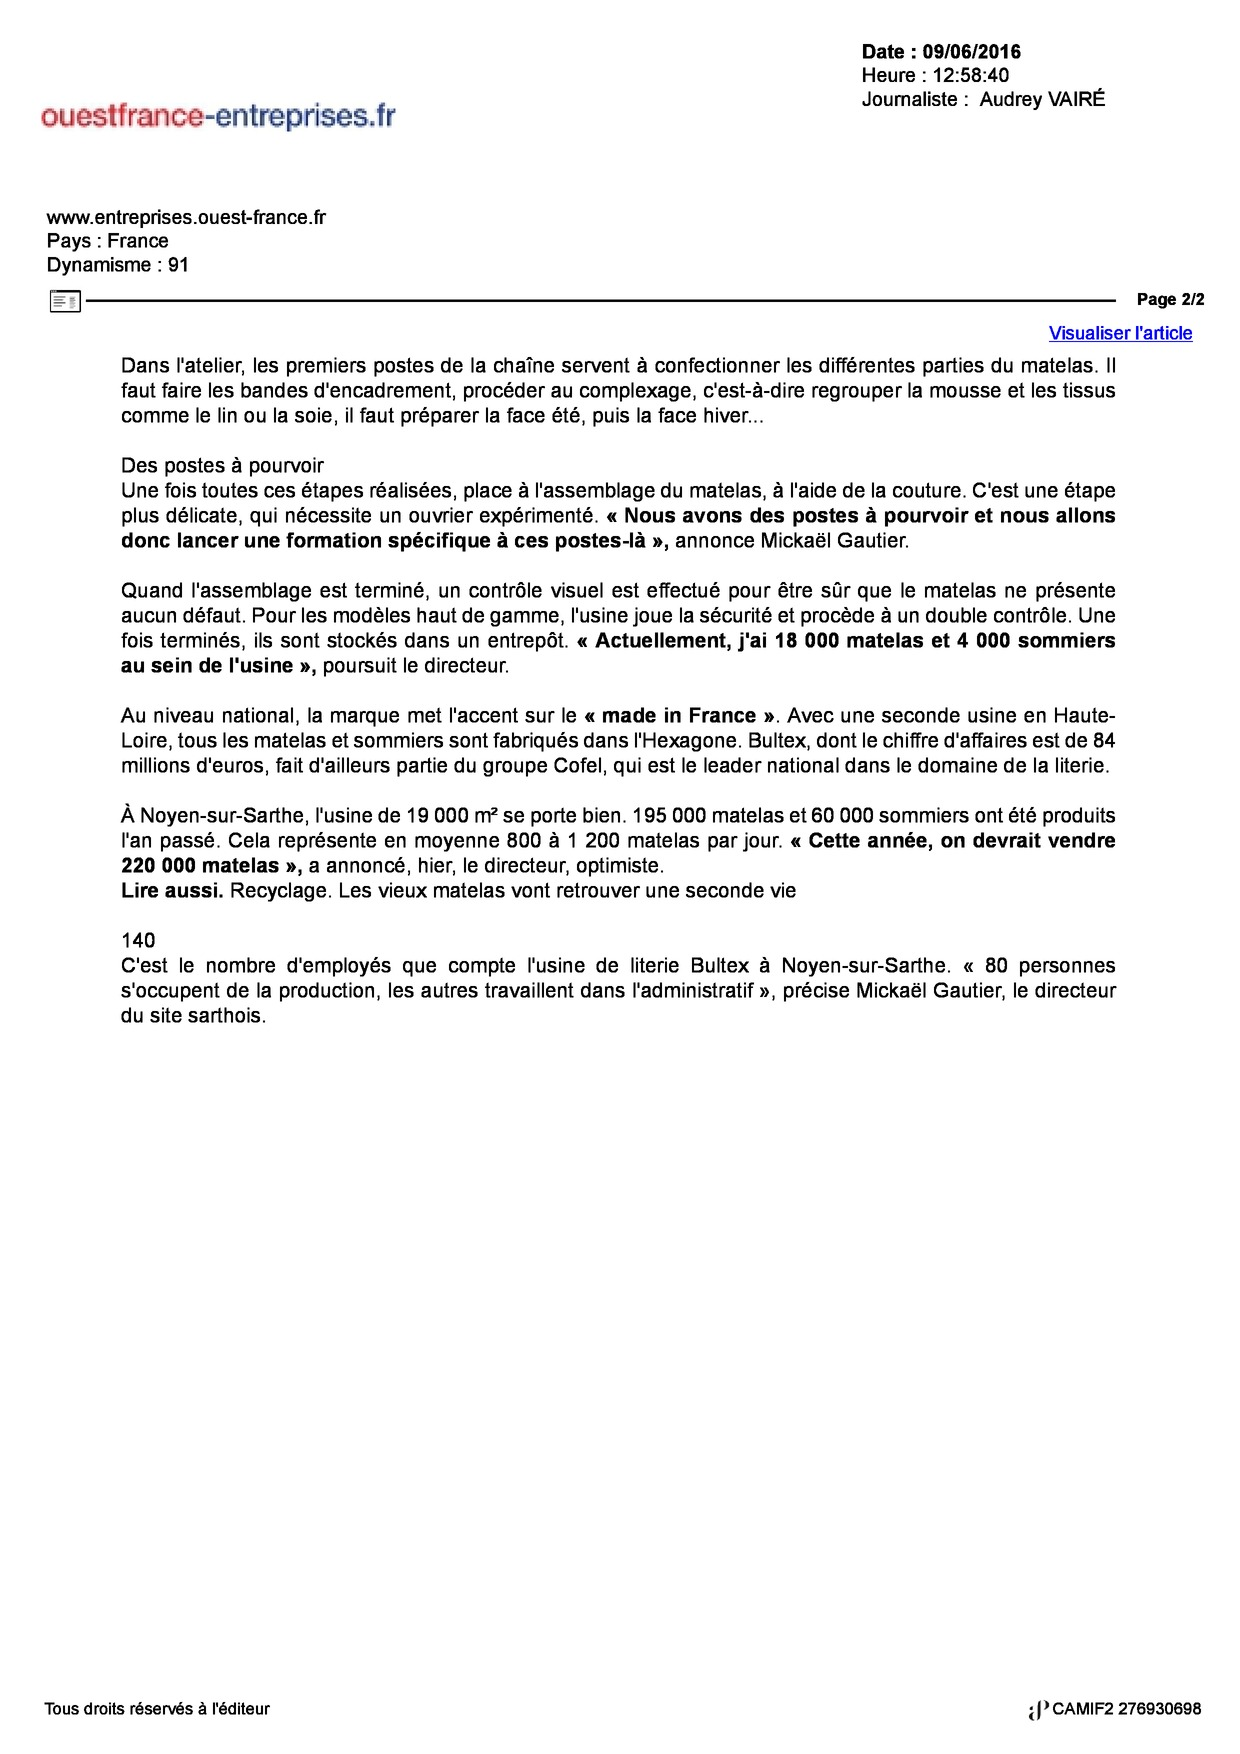 2016-06-095698www_entreprises_ouestfrance_f-page1